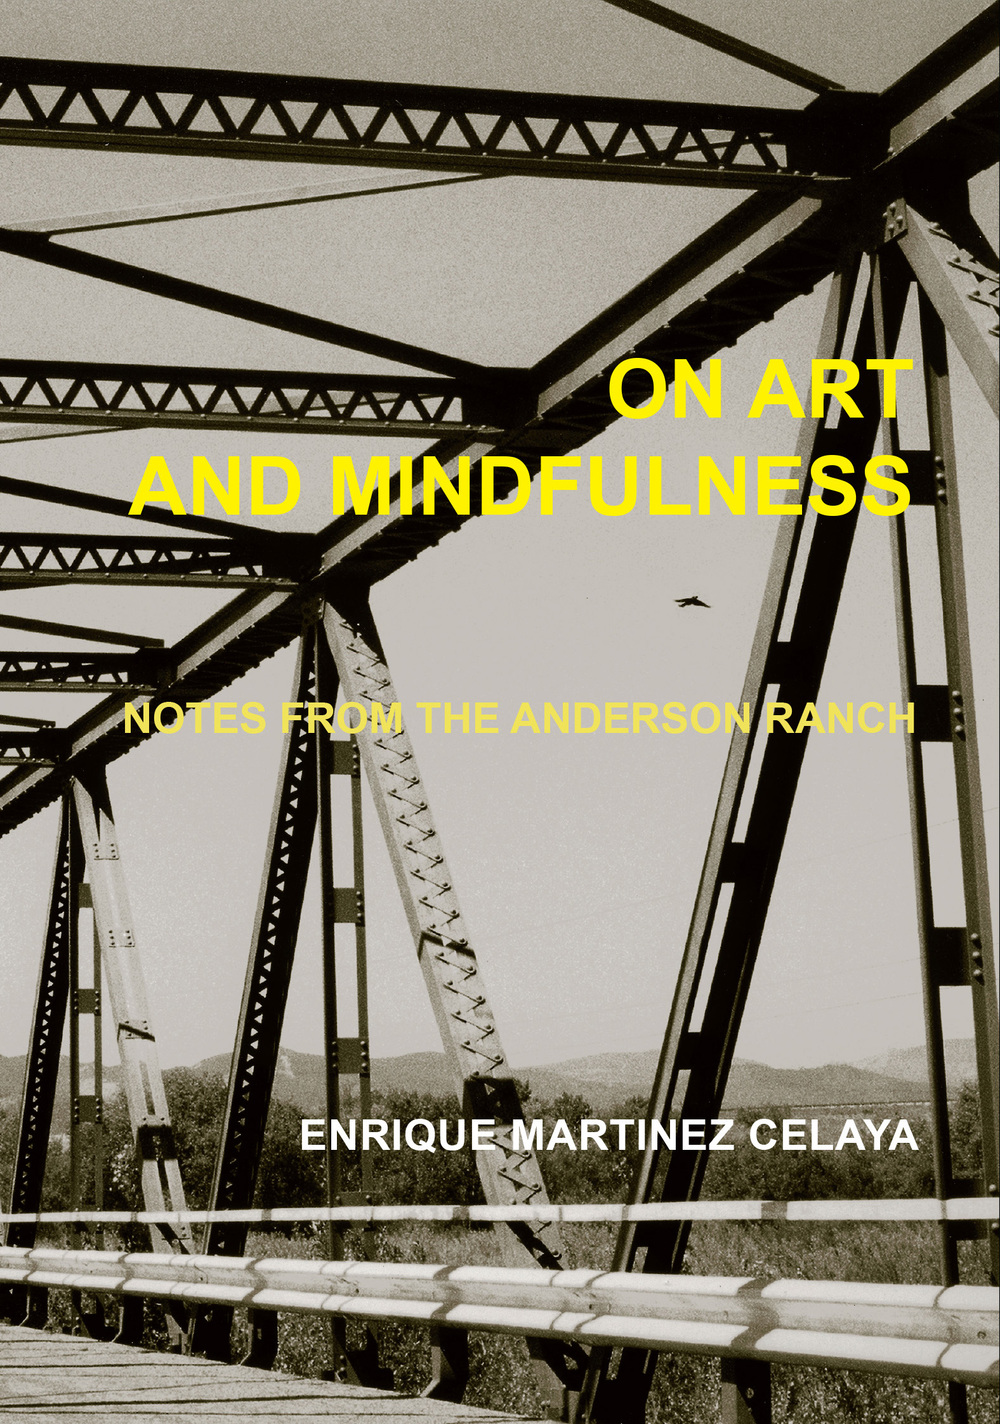 Enrique Martinez Celaya On Art and Mindfulness